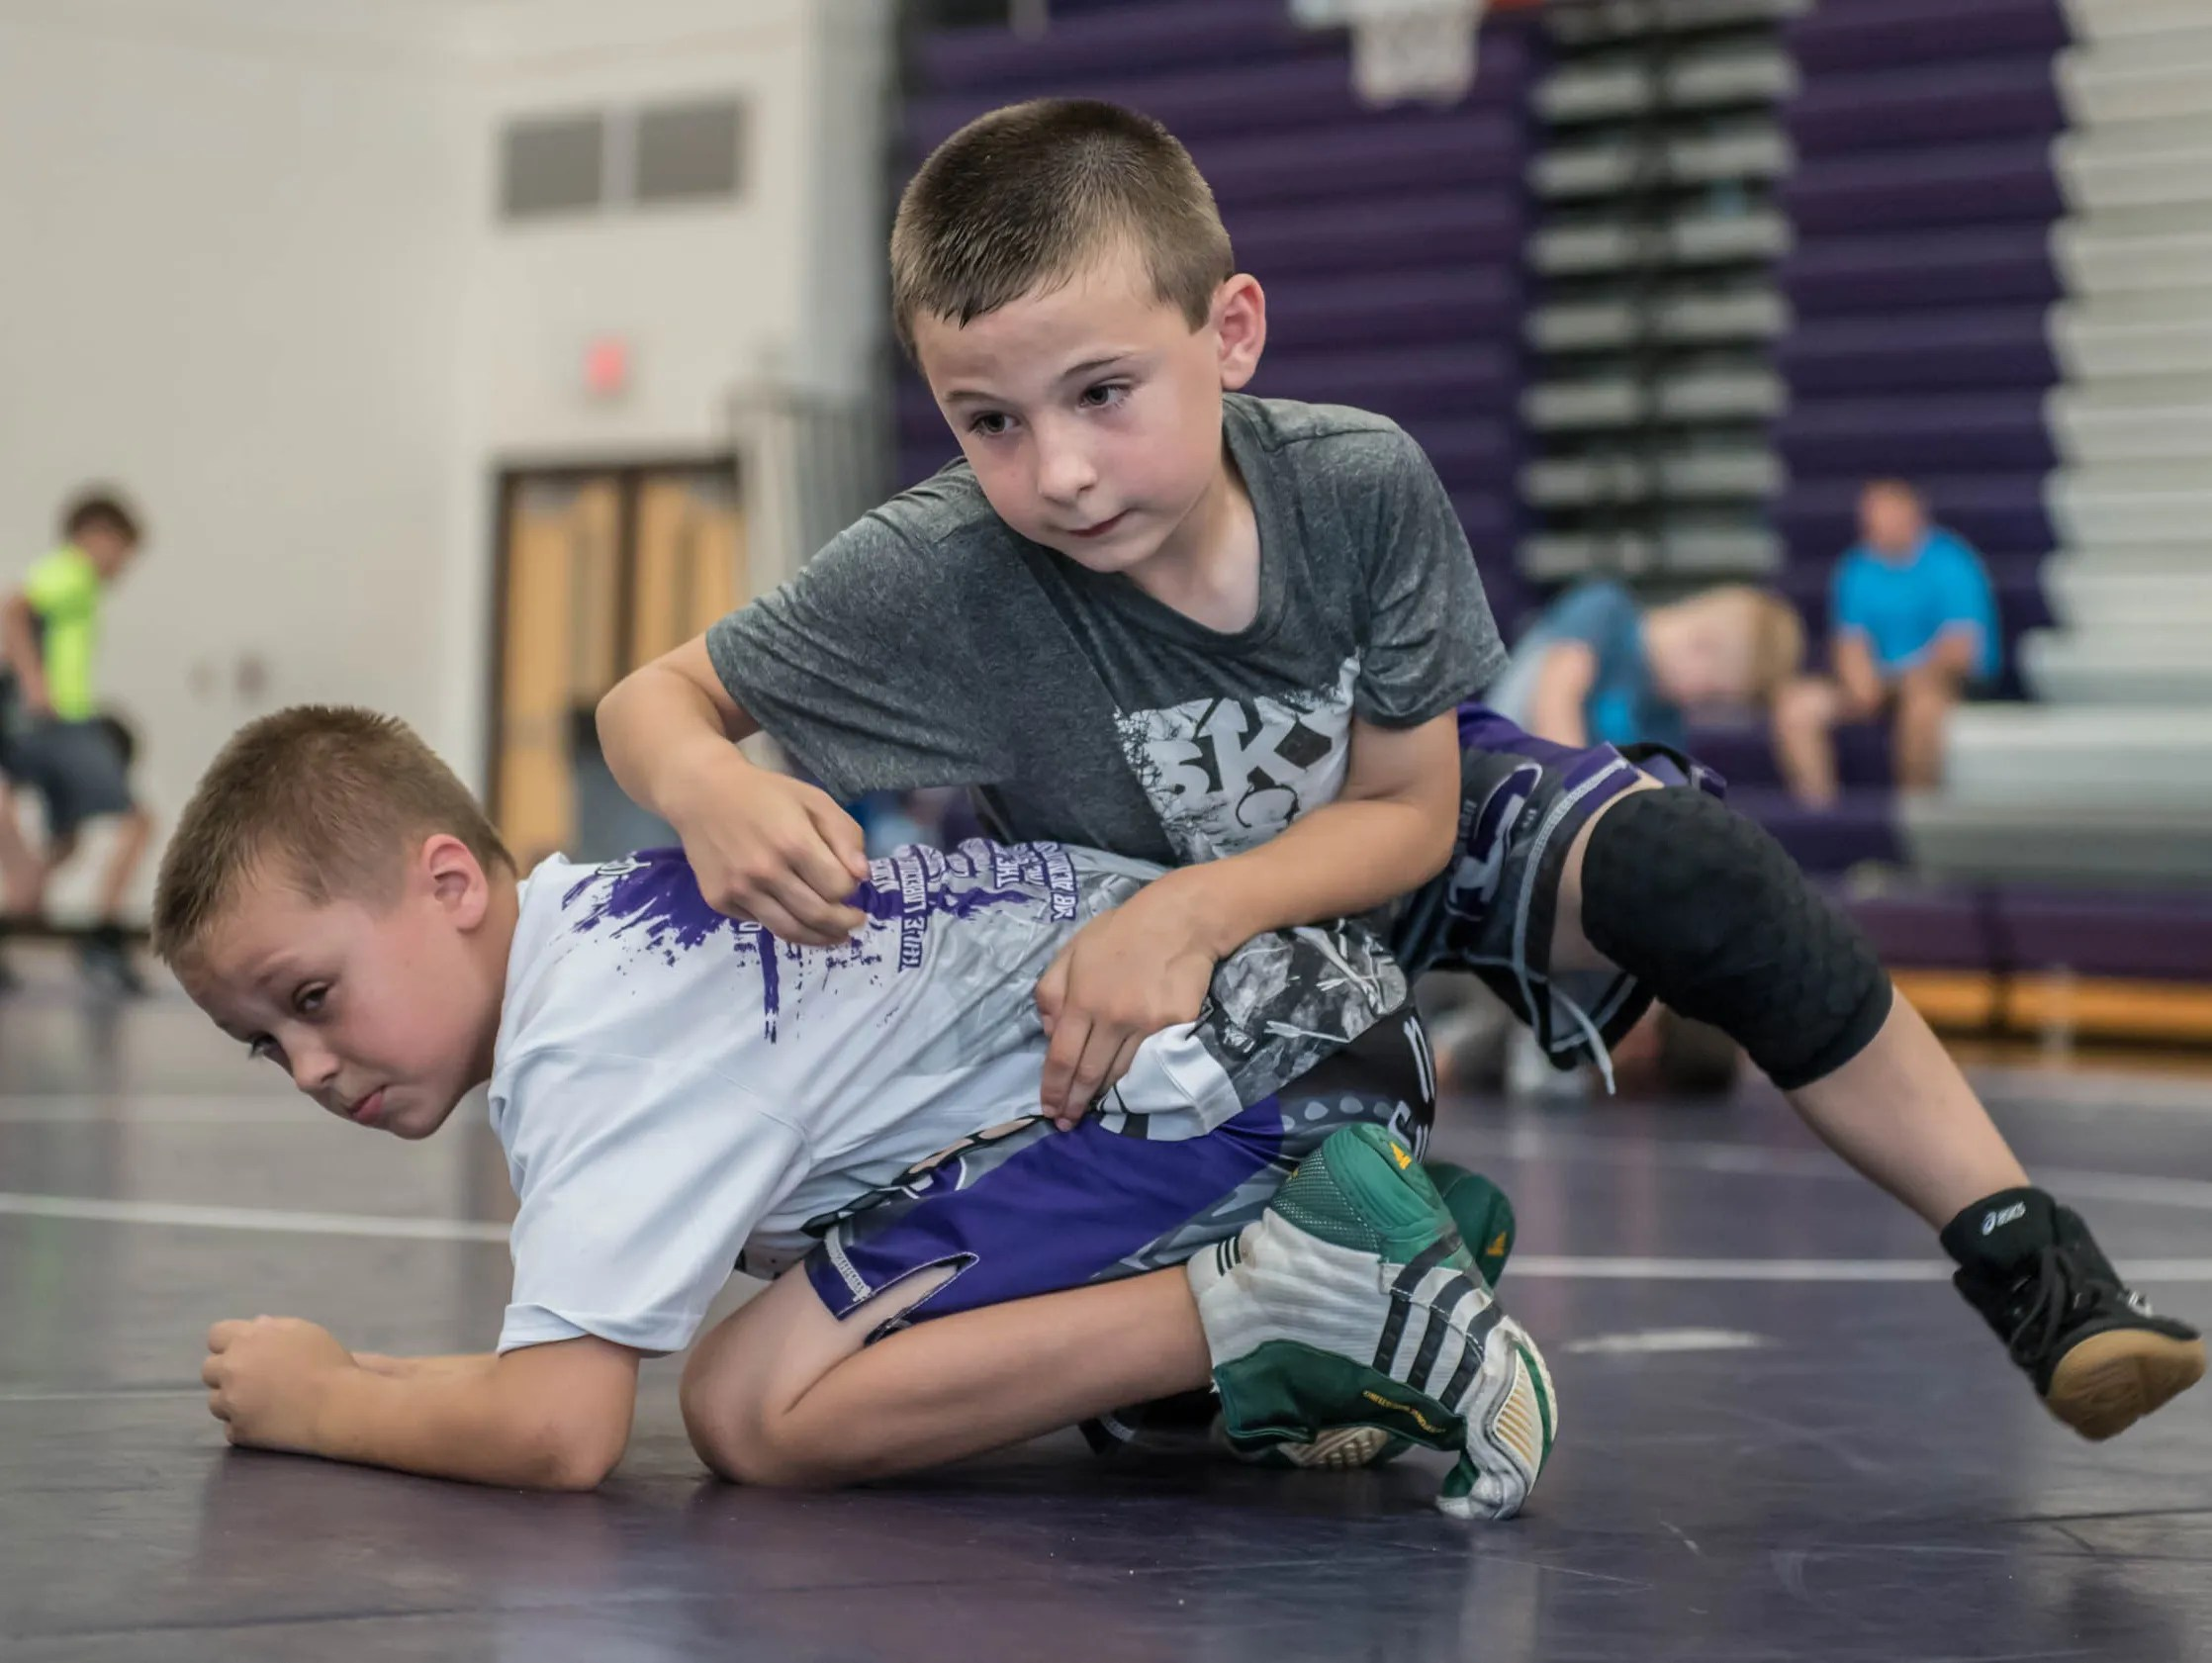 B C Wrestling Camp Offers All American Instruction